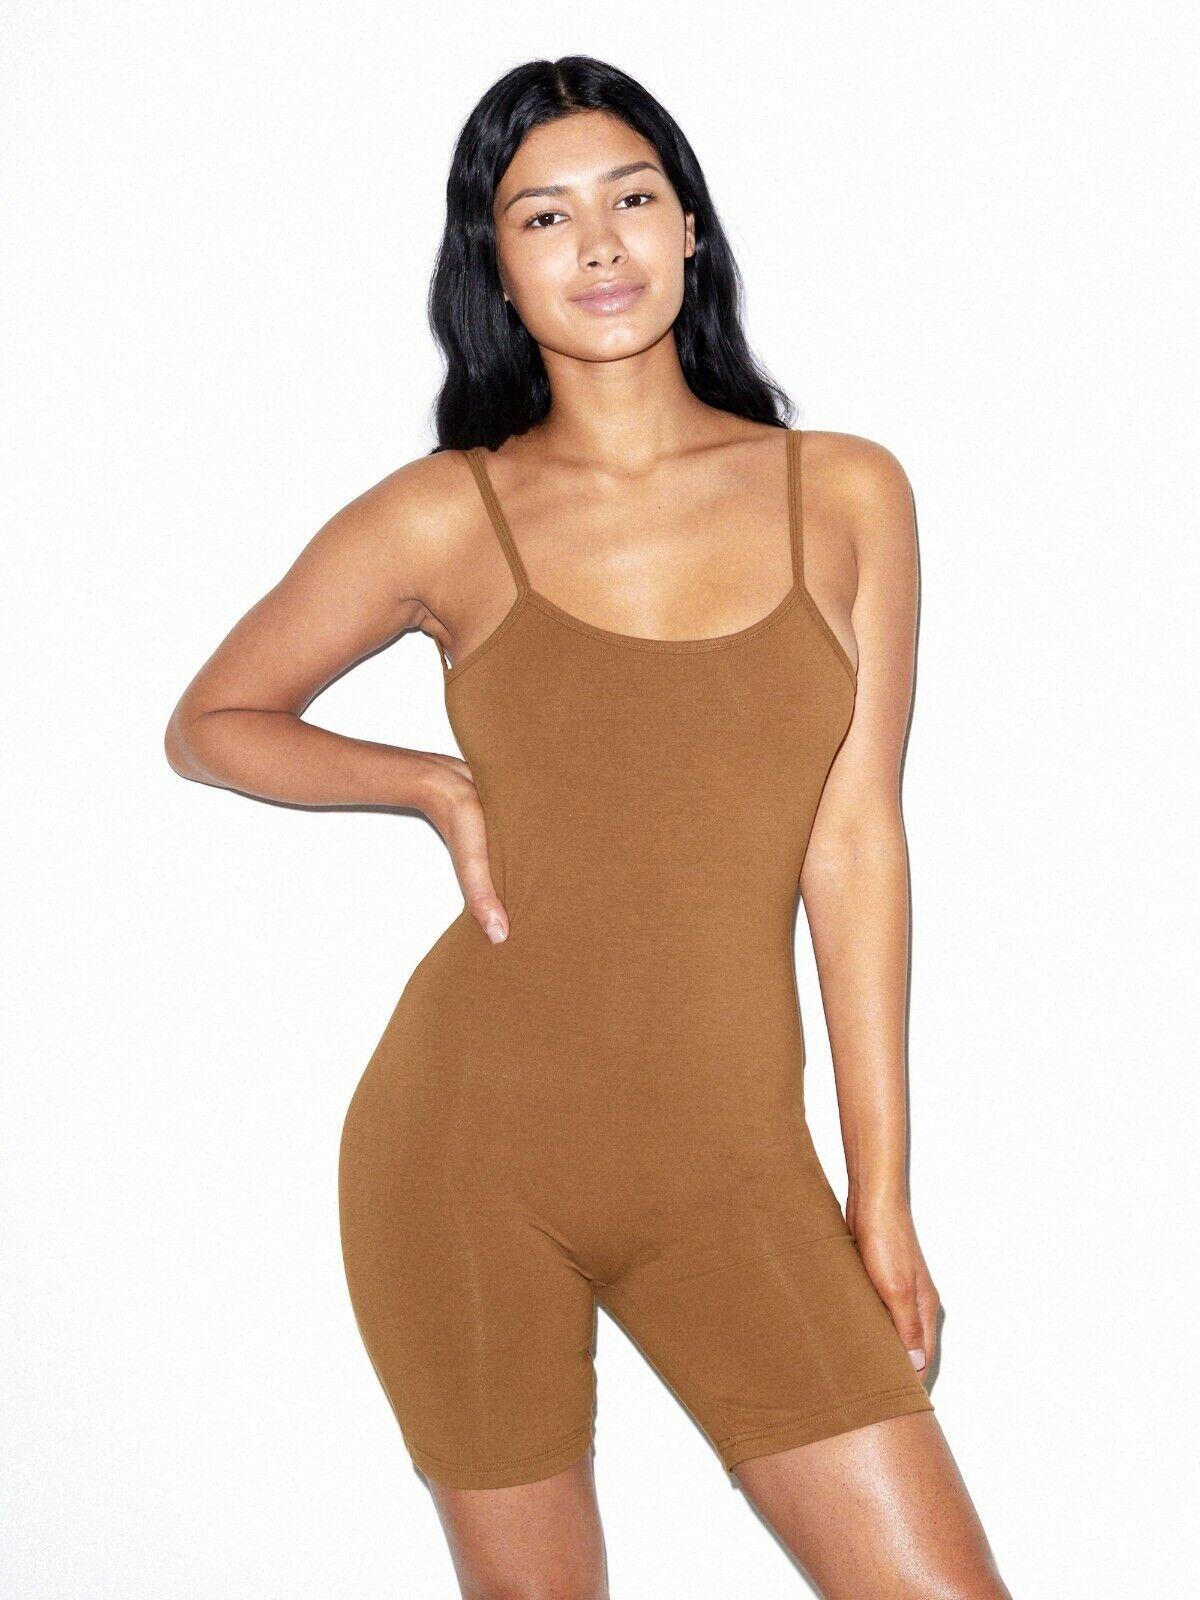 American Apparel Women's Cotton/Spandex Singlet, Nude 4, S &